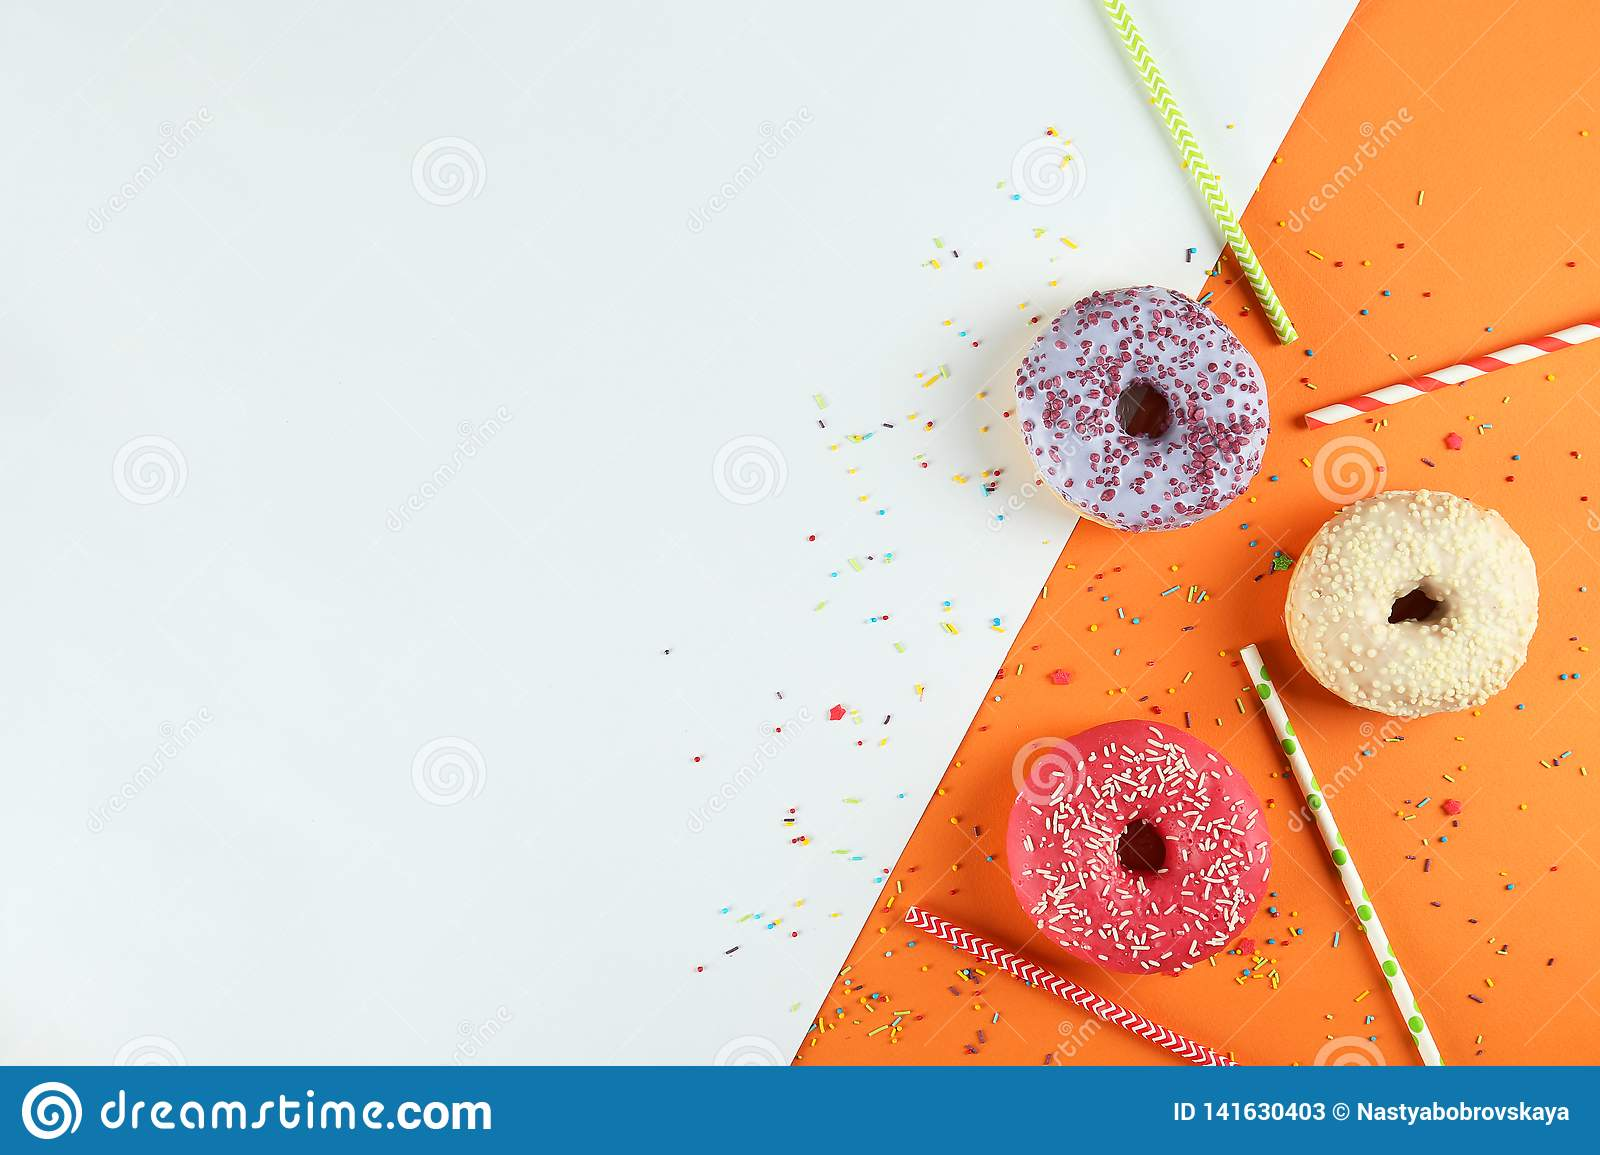 Minimal composition in vibrant colors with bright glaze donuts